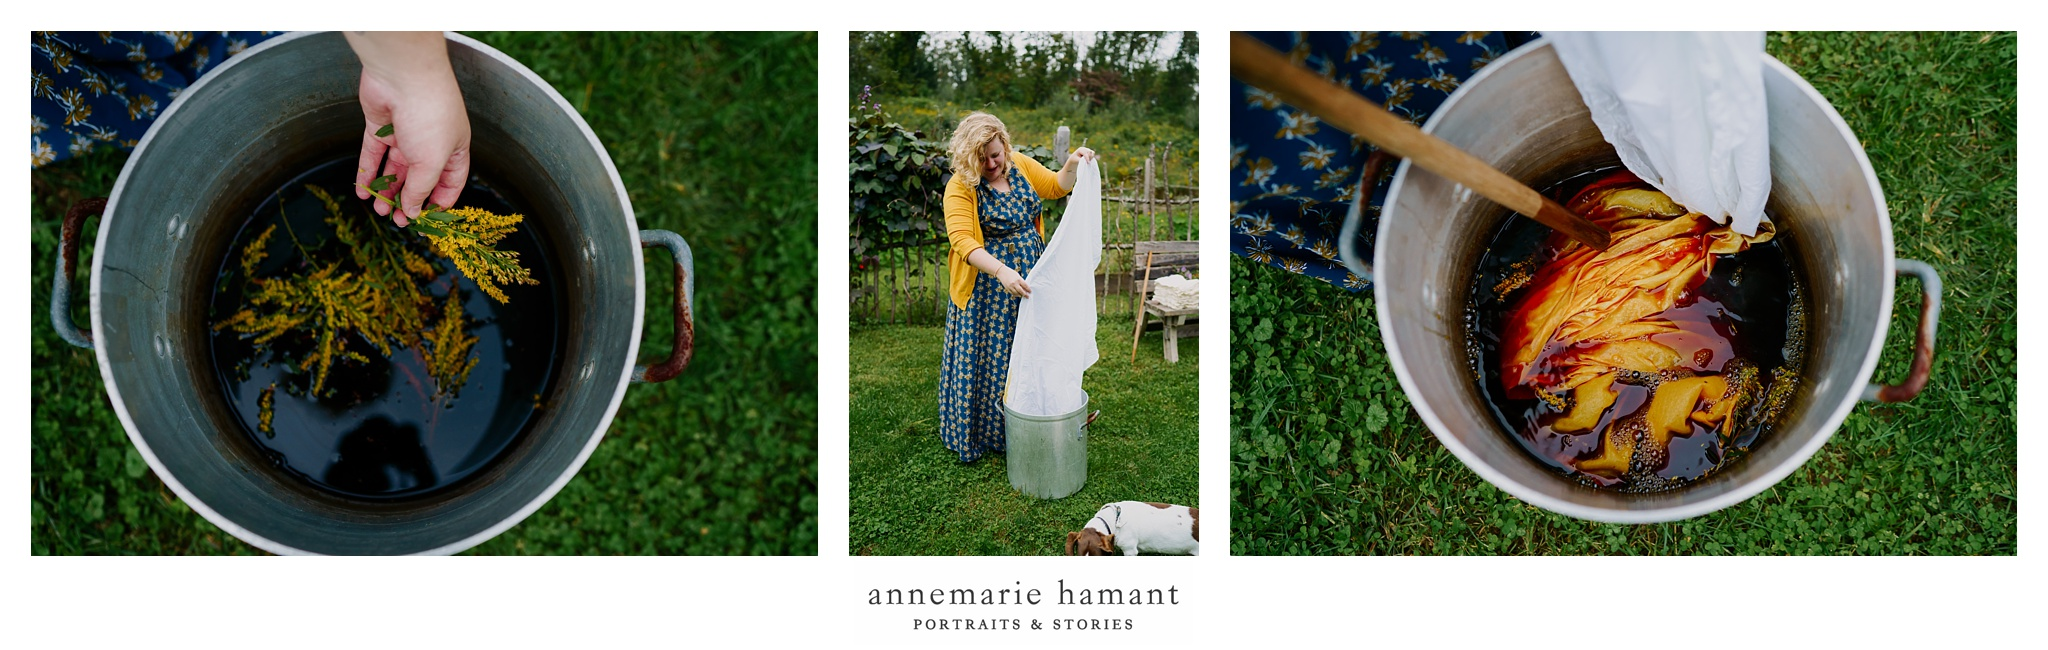 AnneMarie-Hamant-Portraits-And-Stories_1429.jpg